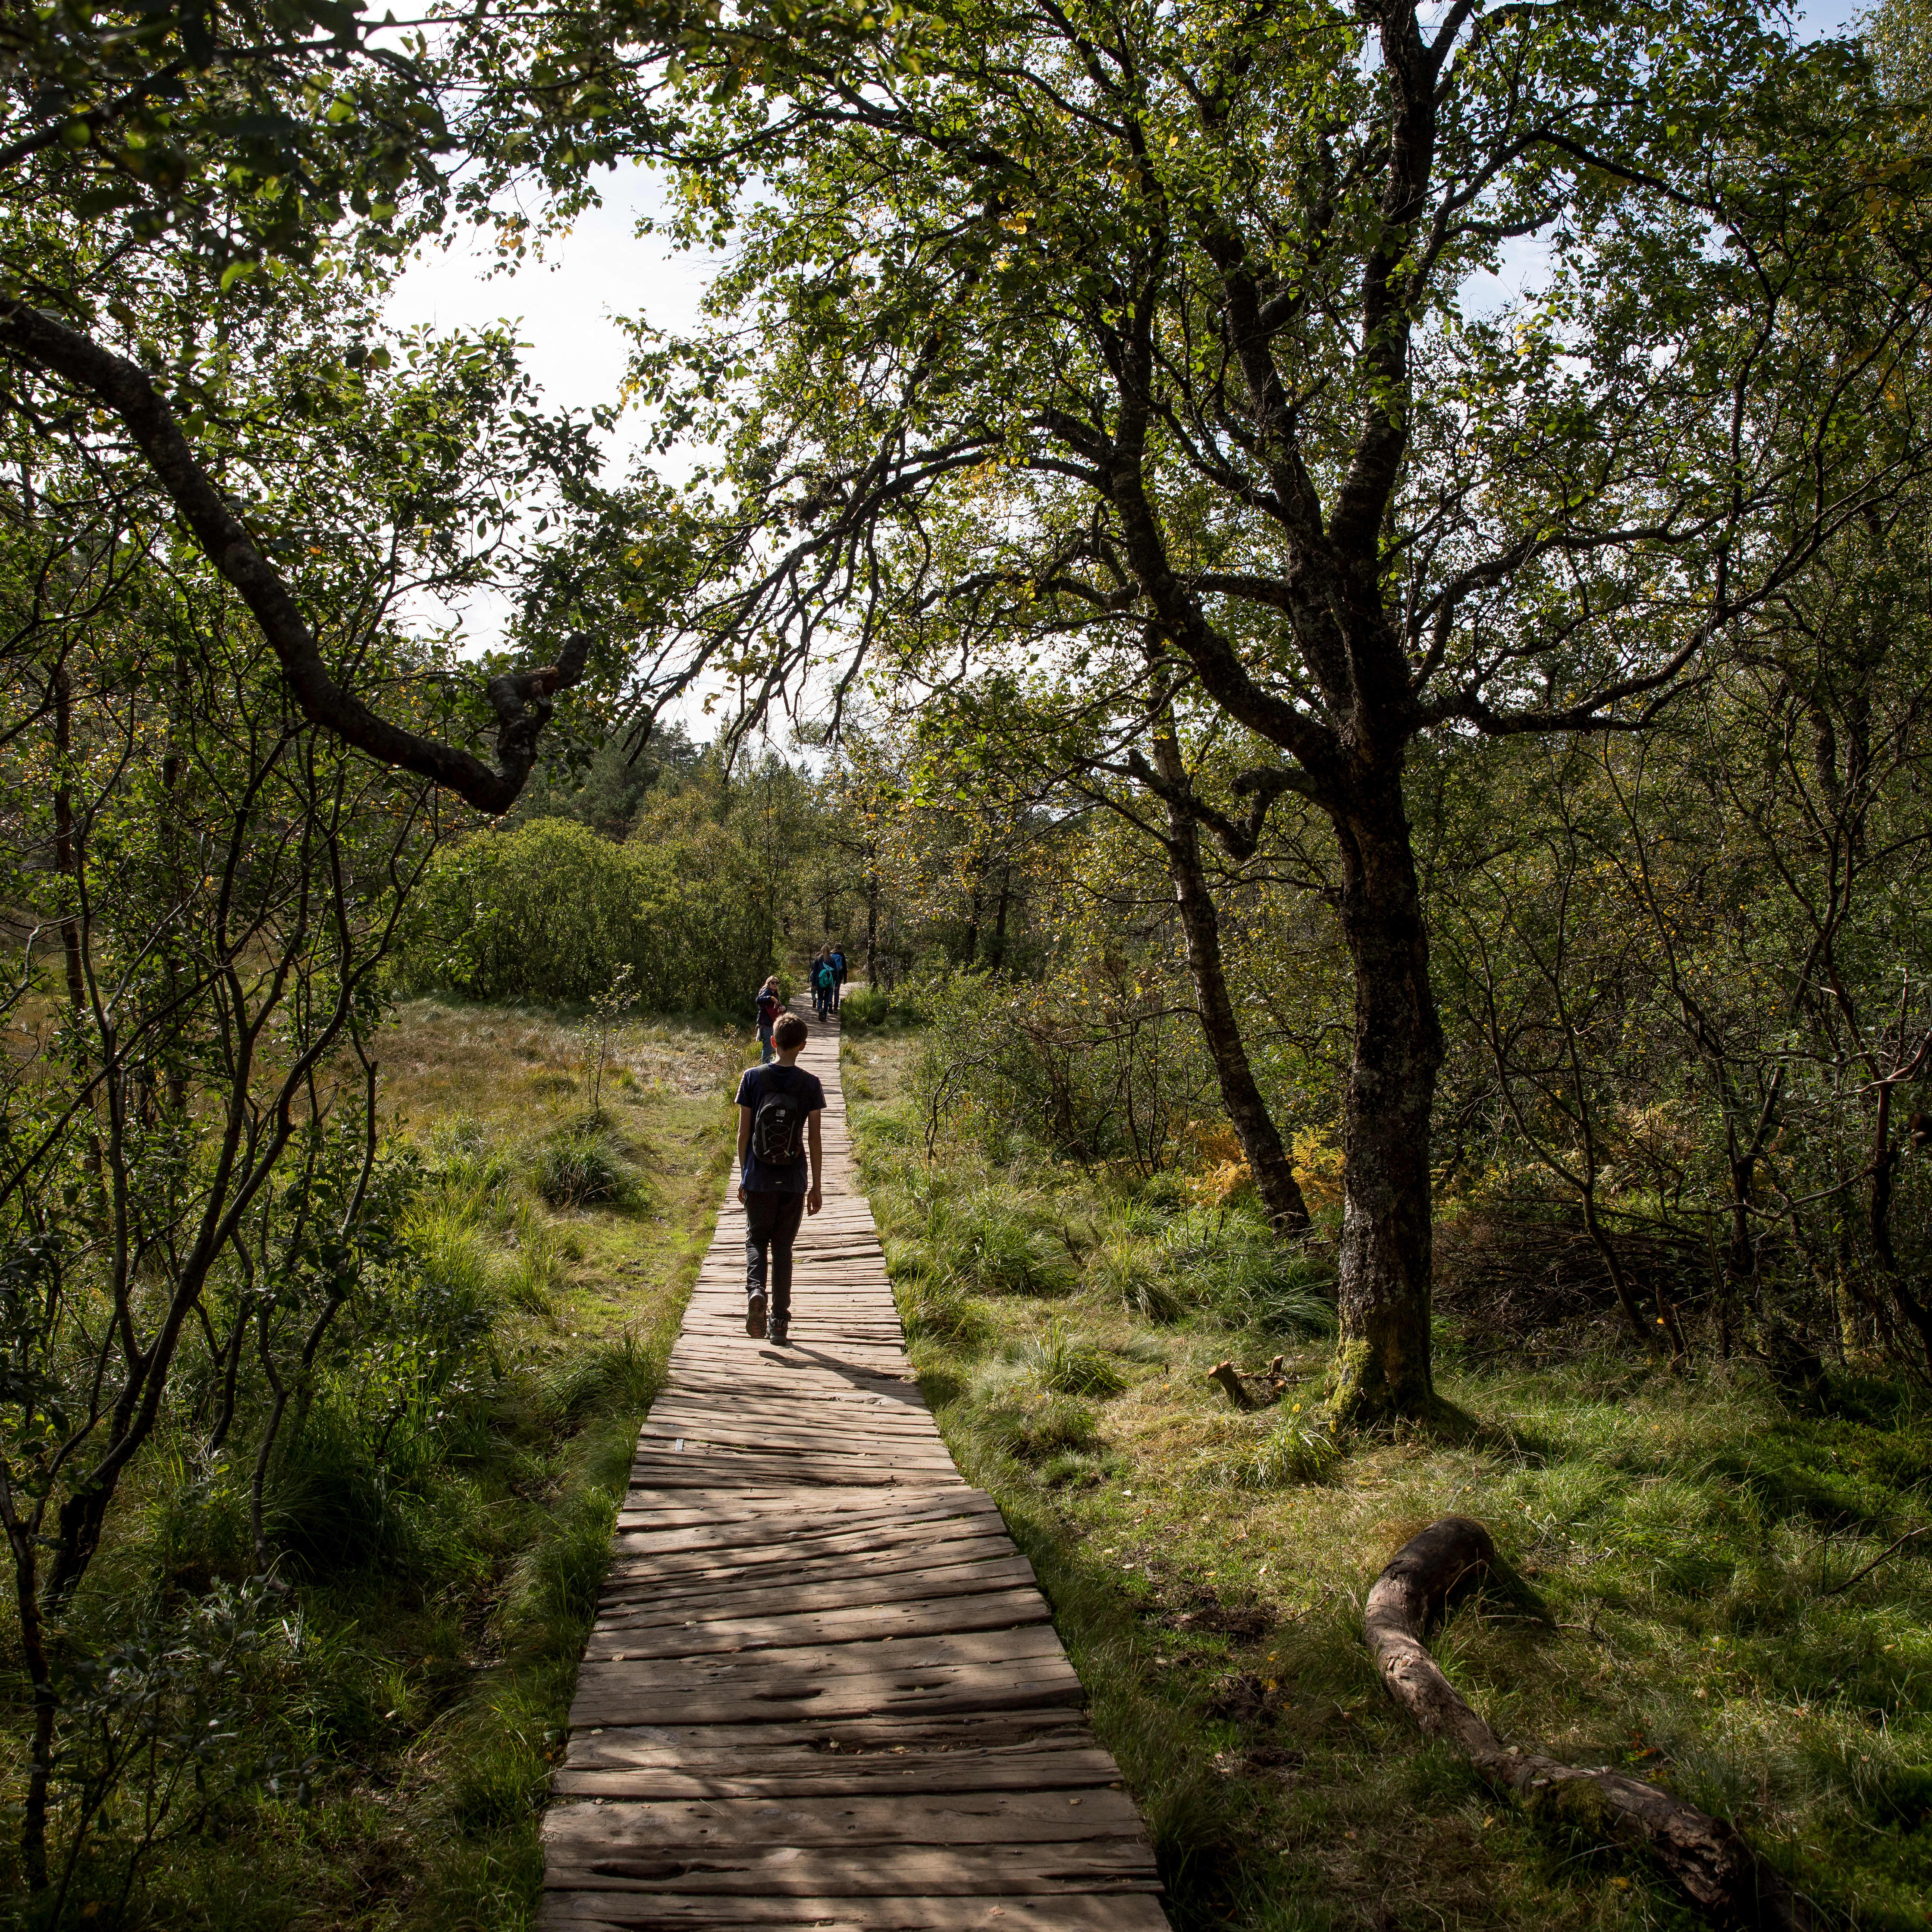 A person walking on a wooden path on the way to Preikestolen. He is surrounded by green grass and forest trees.